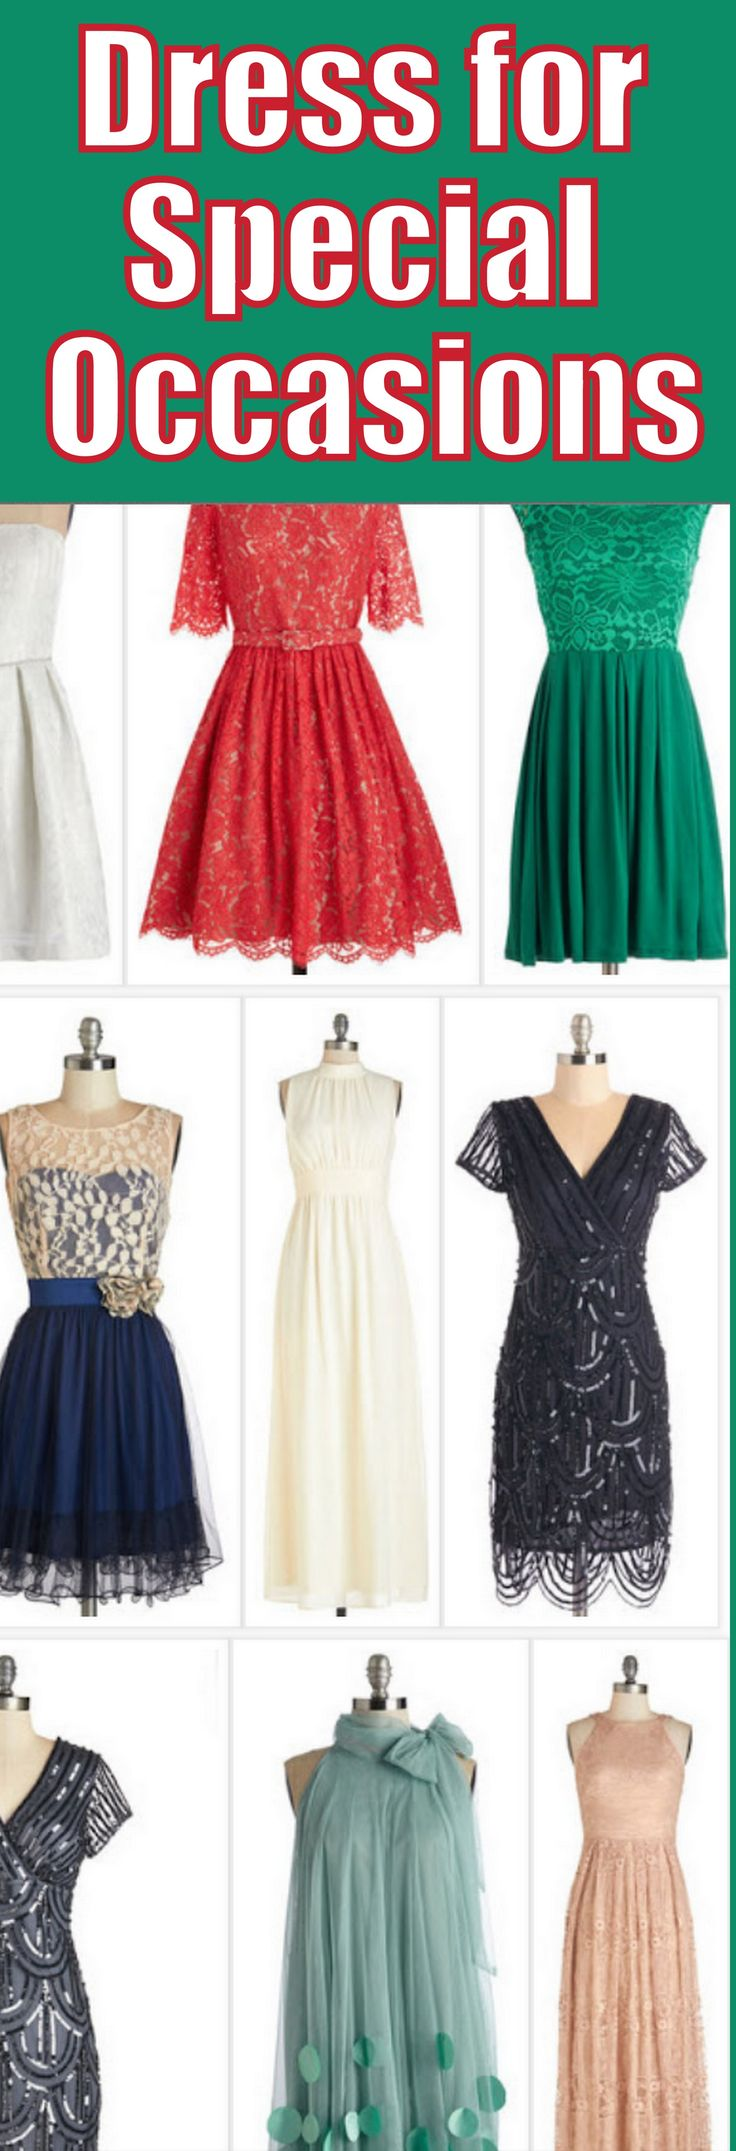 Here are a few dresses for Special Occasions